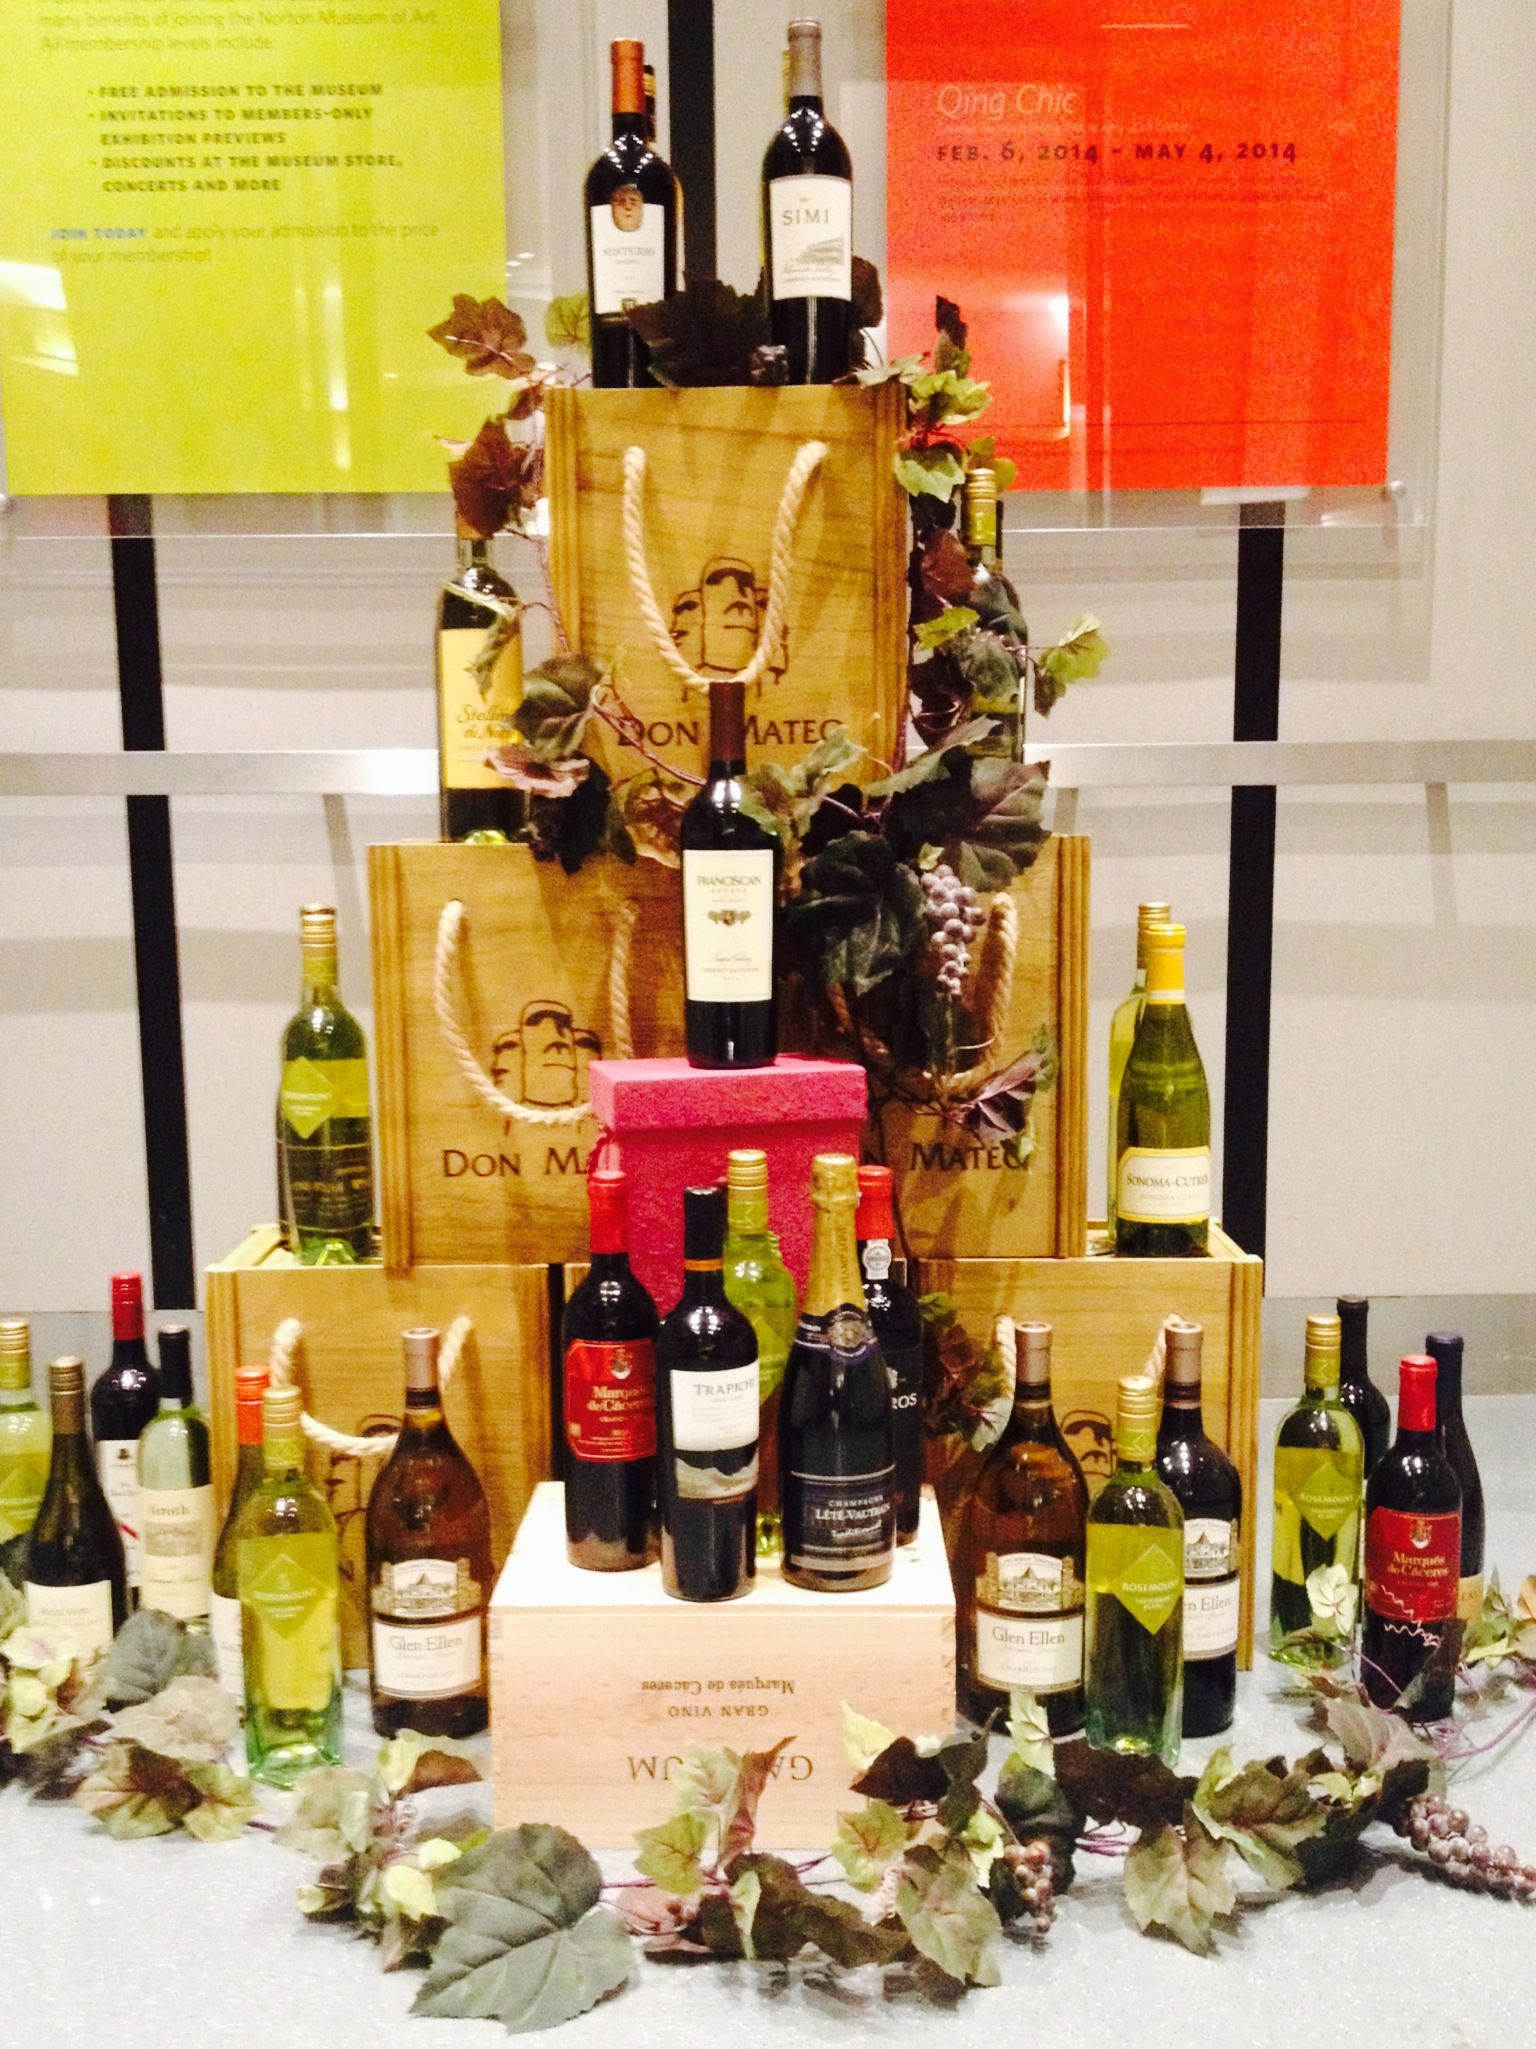 Donated wines will be used for the wine toss at the St. Luke's auction.